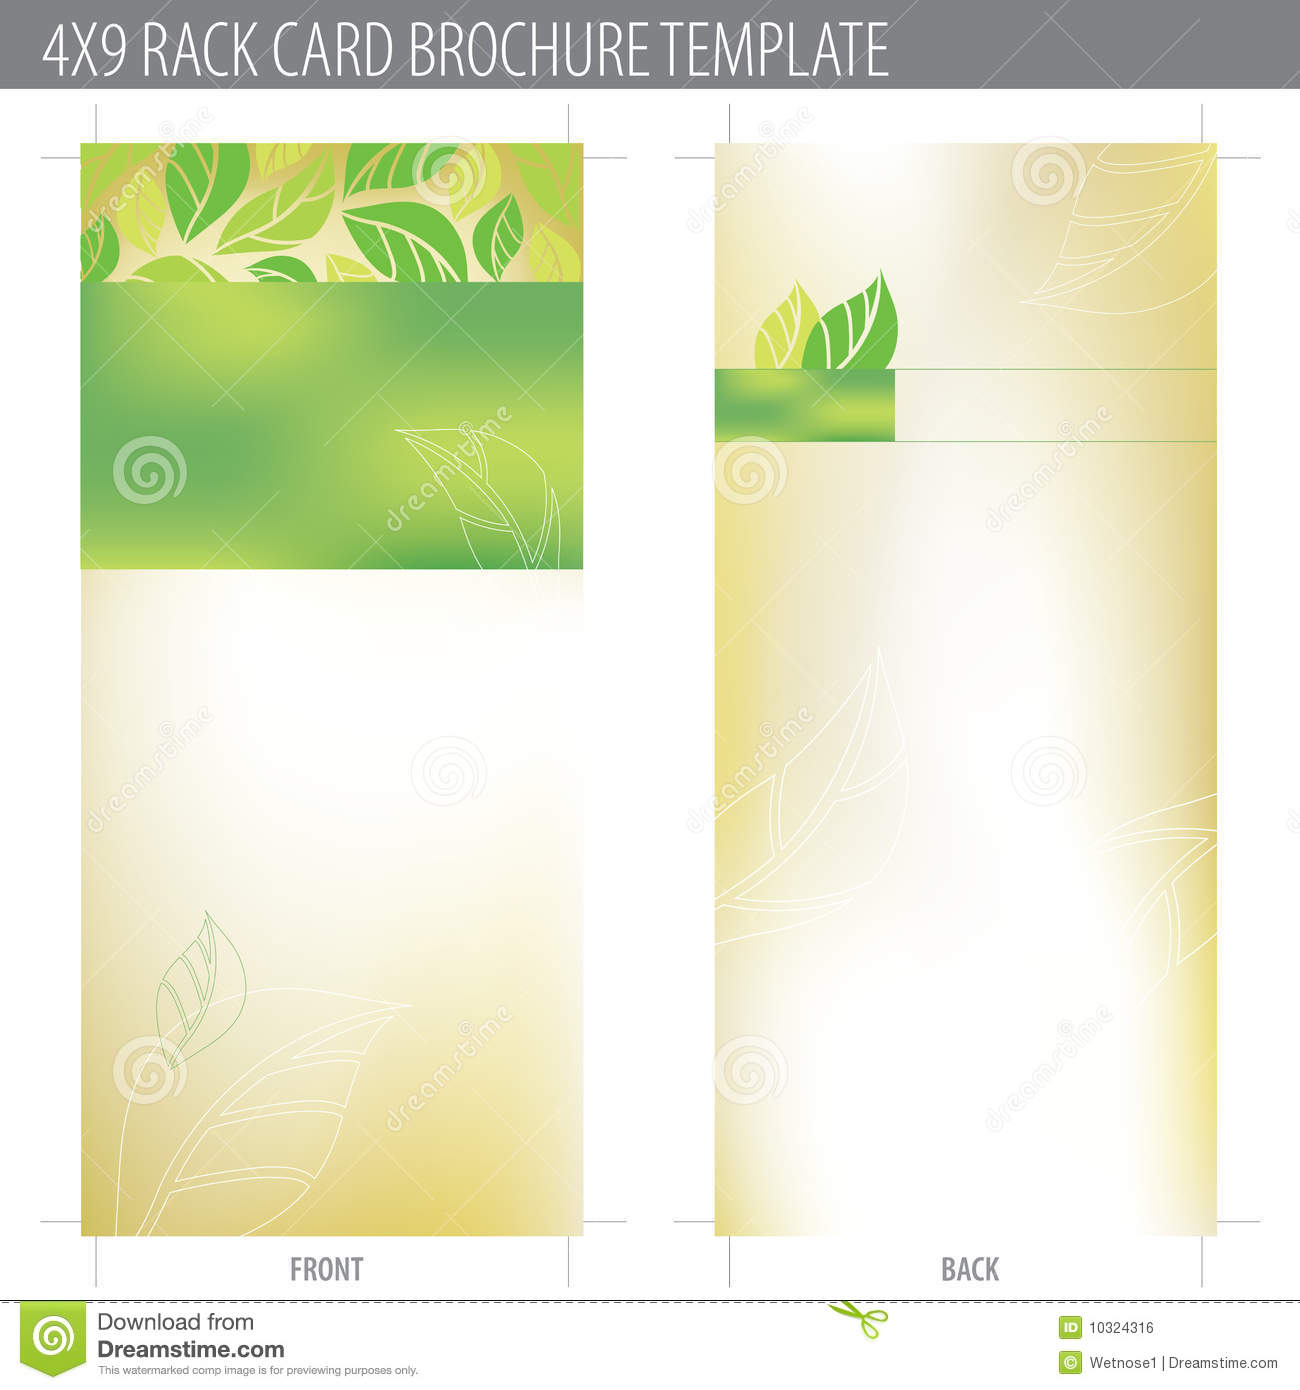 4x9 rack card brochure template stock vector image 10324316 for Brochure free templates